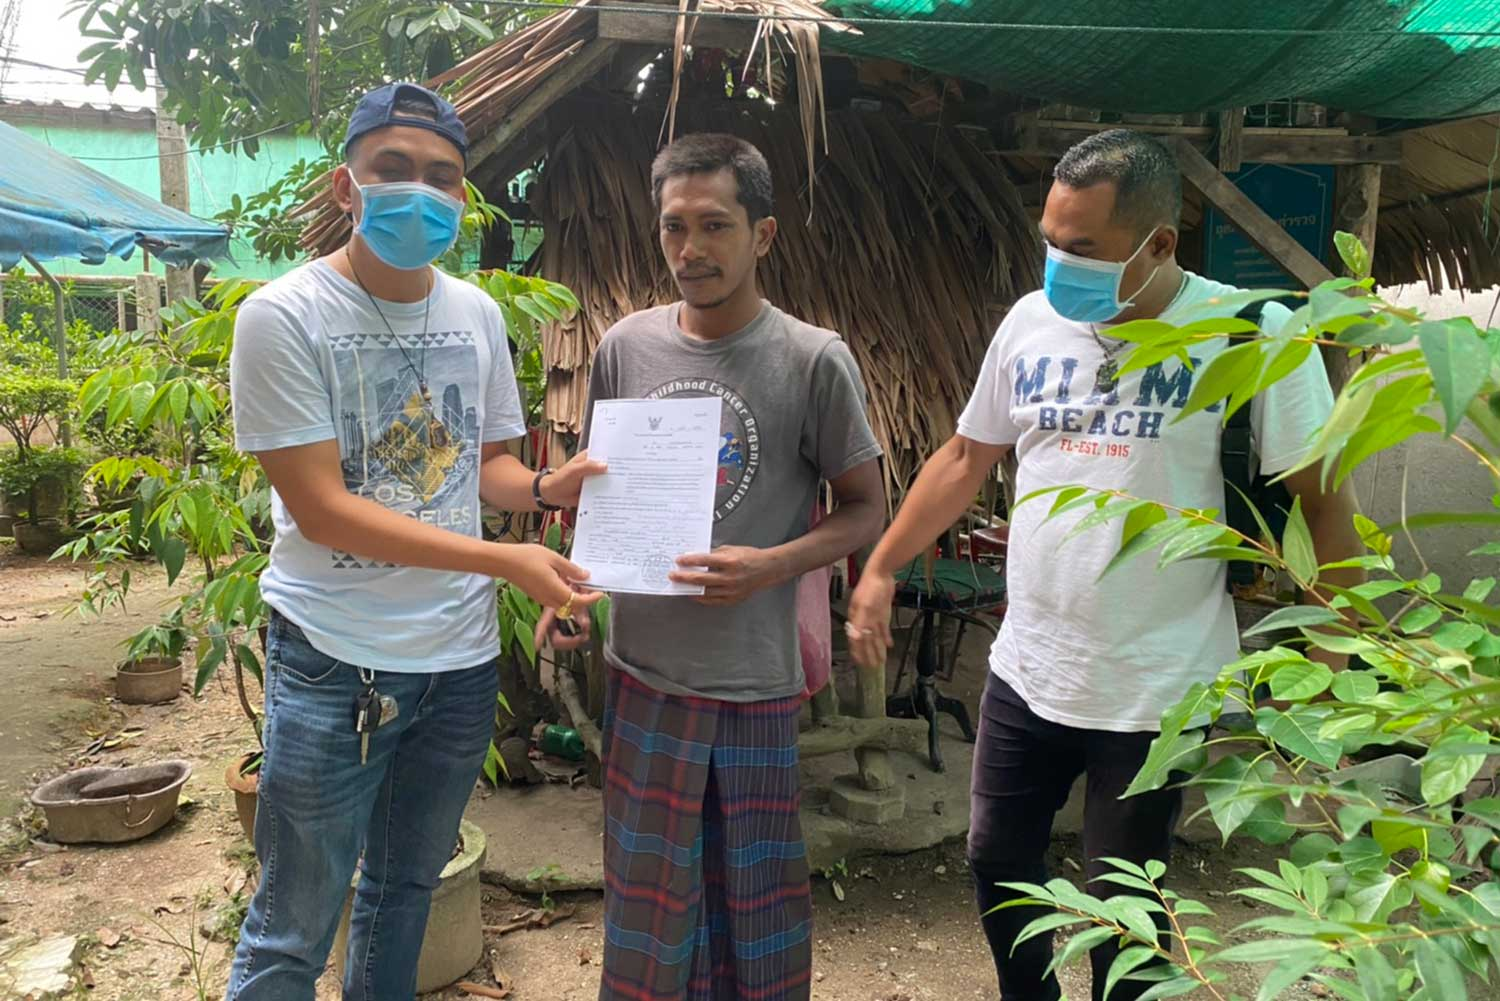 Plainclothes police shows an arrest warrant to Maleekee Jarong, accused of allegedly raping a woman in Samut Prakan and posting her nude photos online, when arresting him at his house in Yarang district, Pattani, on Thursday morning. (Supplied photo)